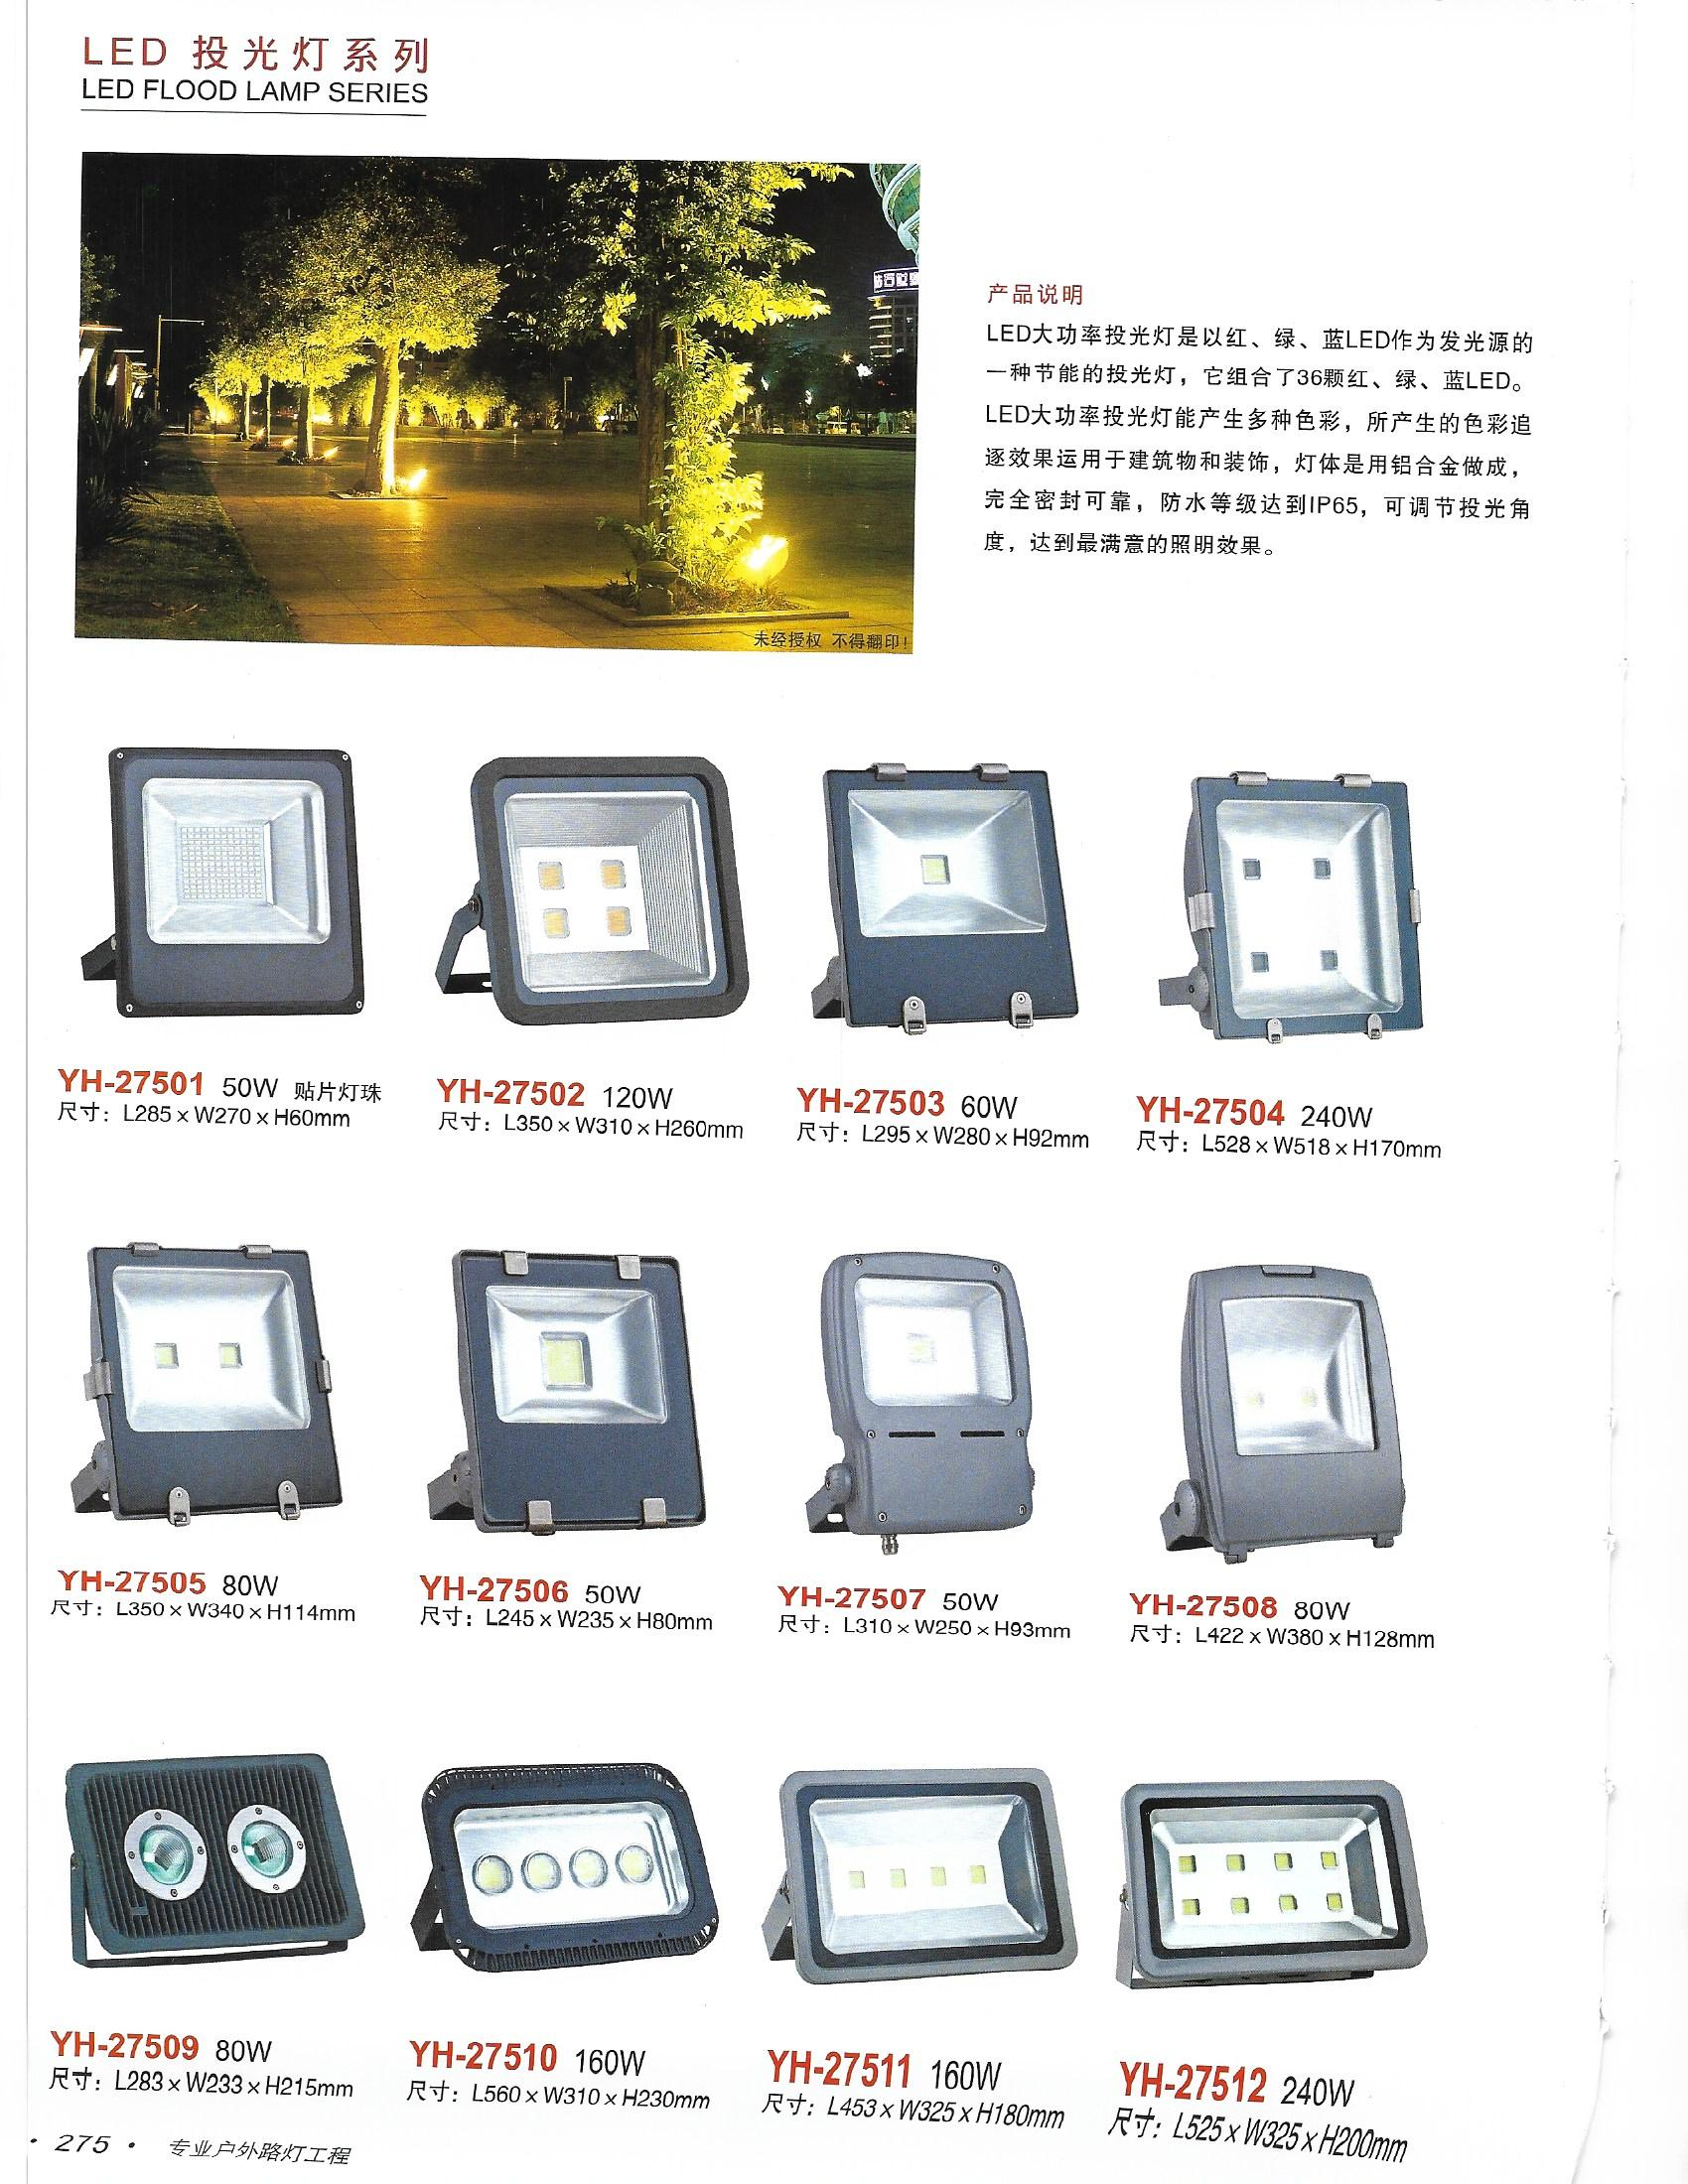 Đèn Pha - Flood Light 24 - 240W